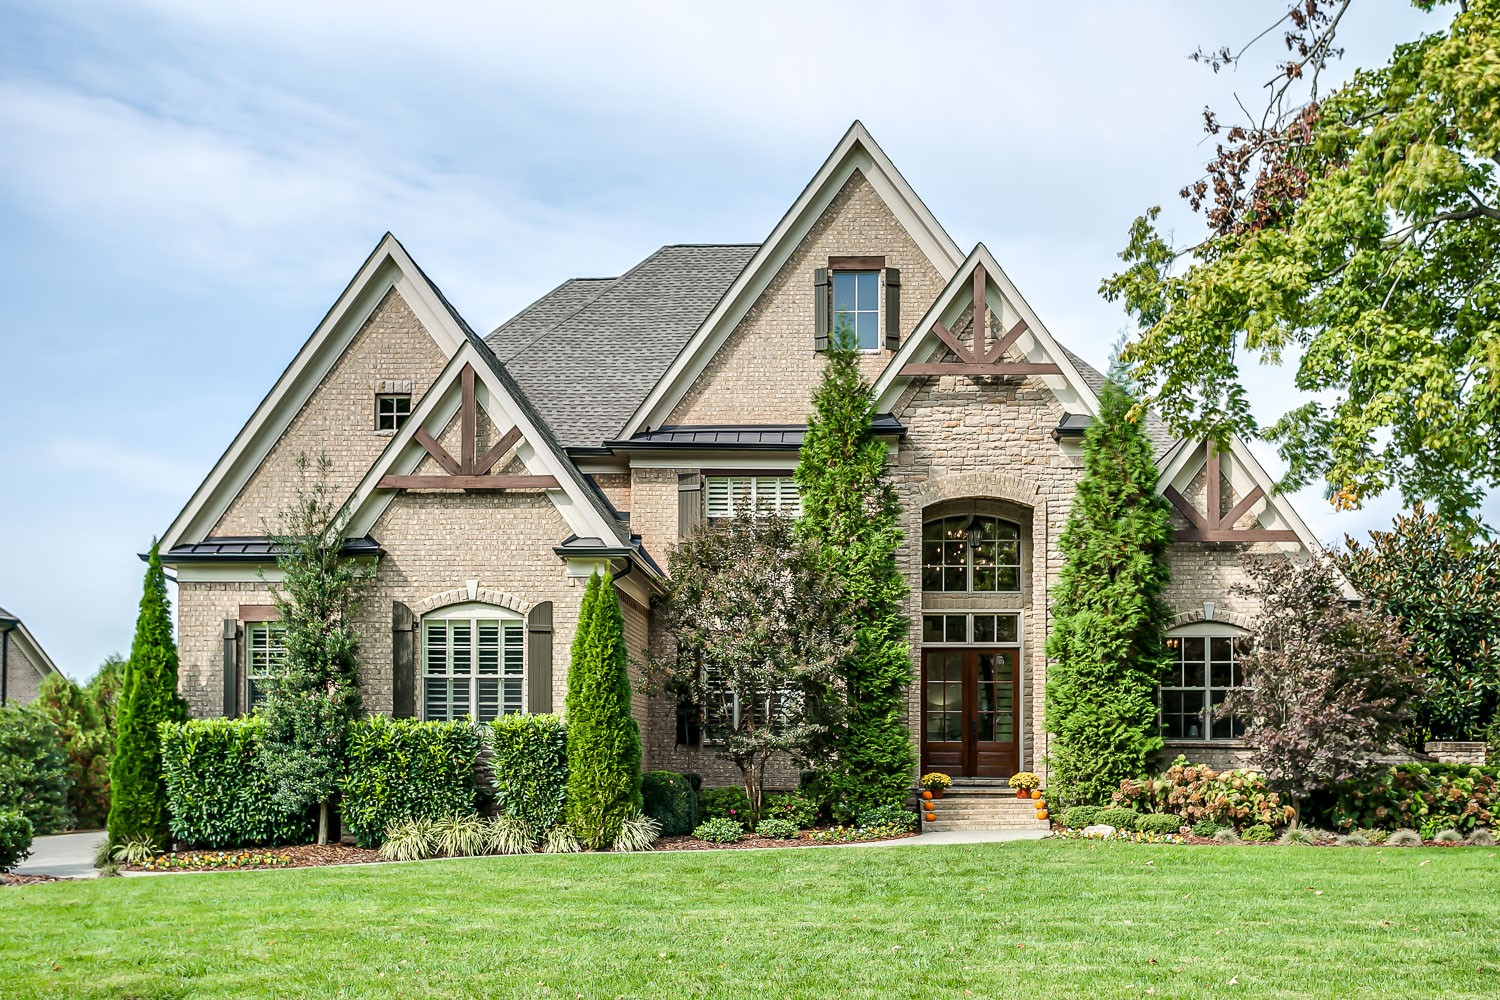 """Simply stunning in the """"Manor"""" at Morgan Farms.  This Control4 """"smart home"""" is casually elegant w/coffered ceilings, lux kitchen w/double ovens, sub zero fridge & 2 islands overlooking gorgeous keeping room w/stack stone fireplace, built ins & vaulted beamed ceiling.  Gracious master suite w/soaking tub & walk thru shower.   Host game day in huge media rm w/wet bar, projector & 120"""" screen or in the Amazing outdoor living spaces complete w/grill island, HUGE patio & fireplace."""